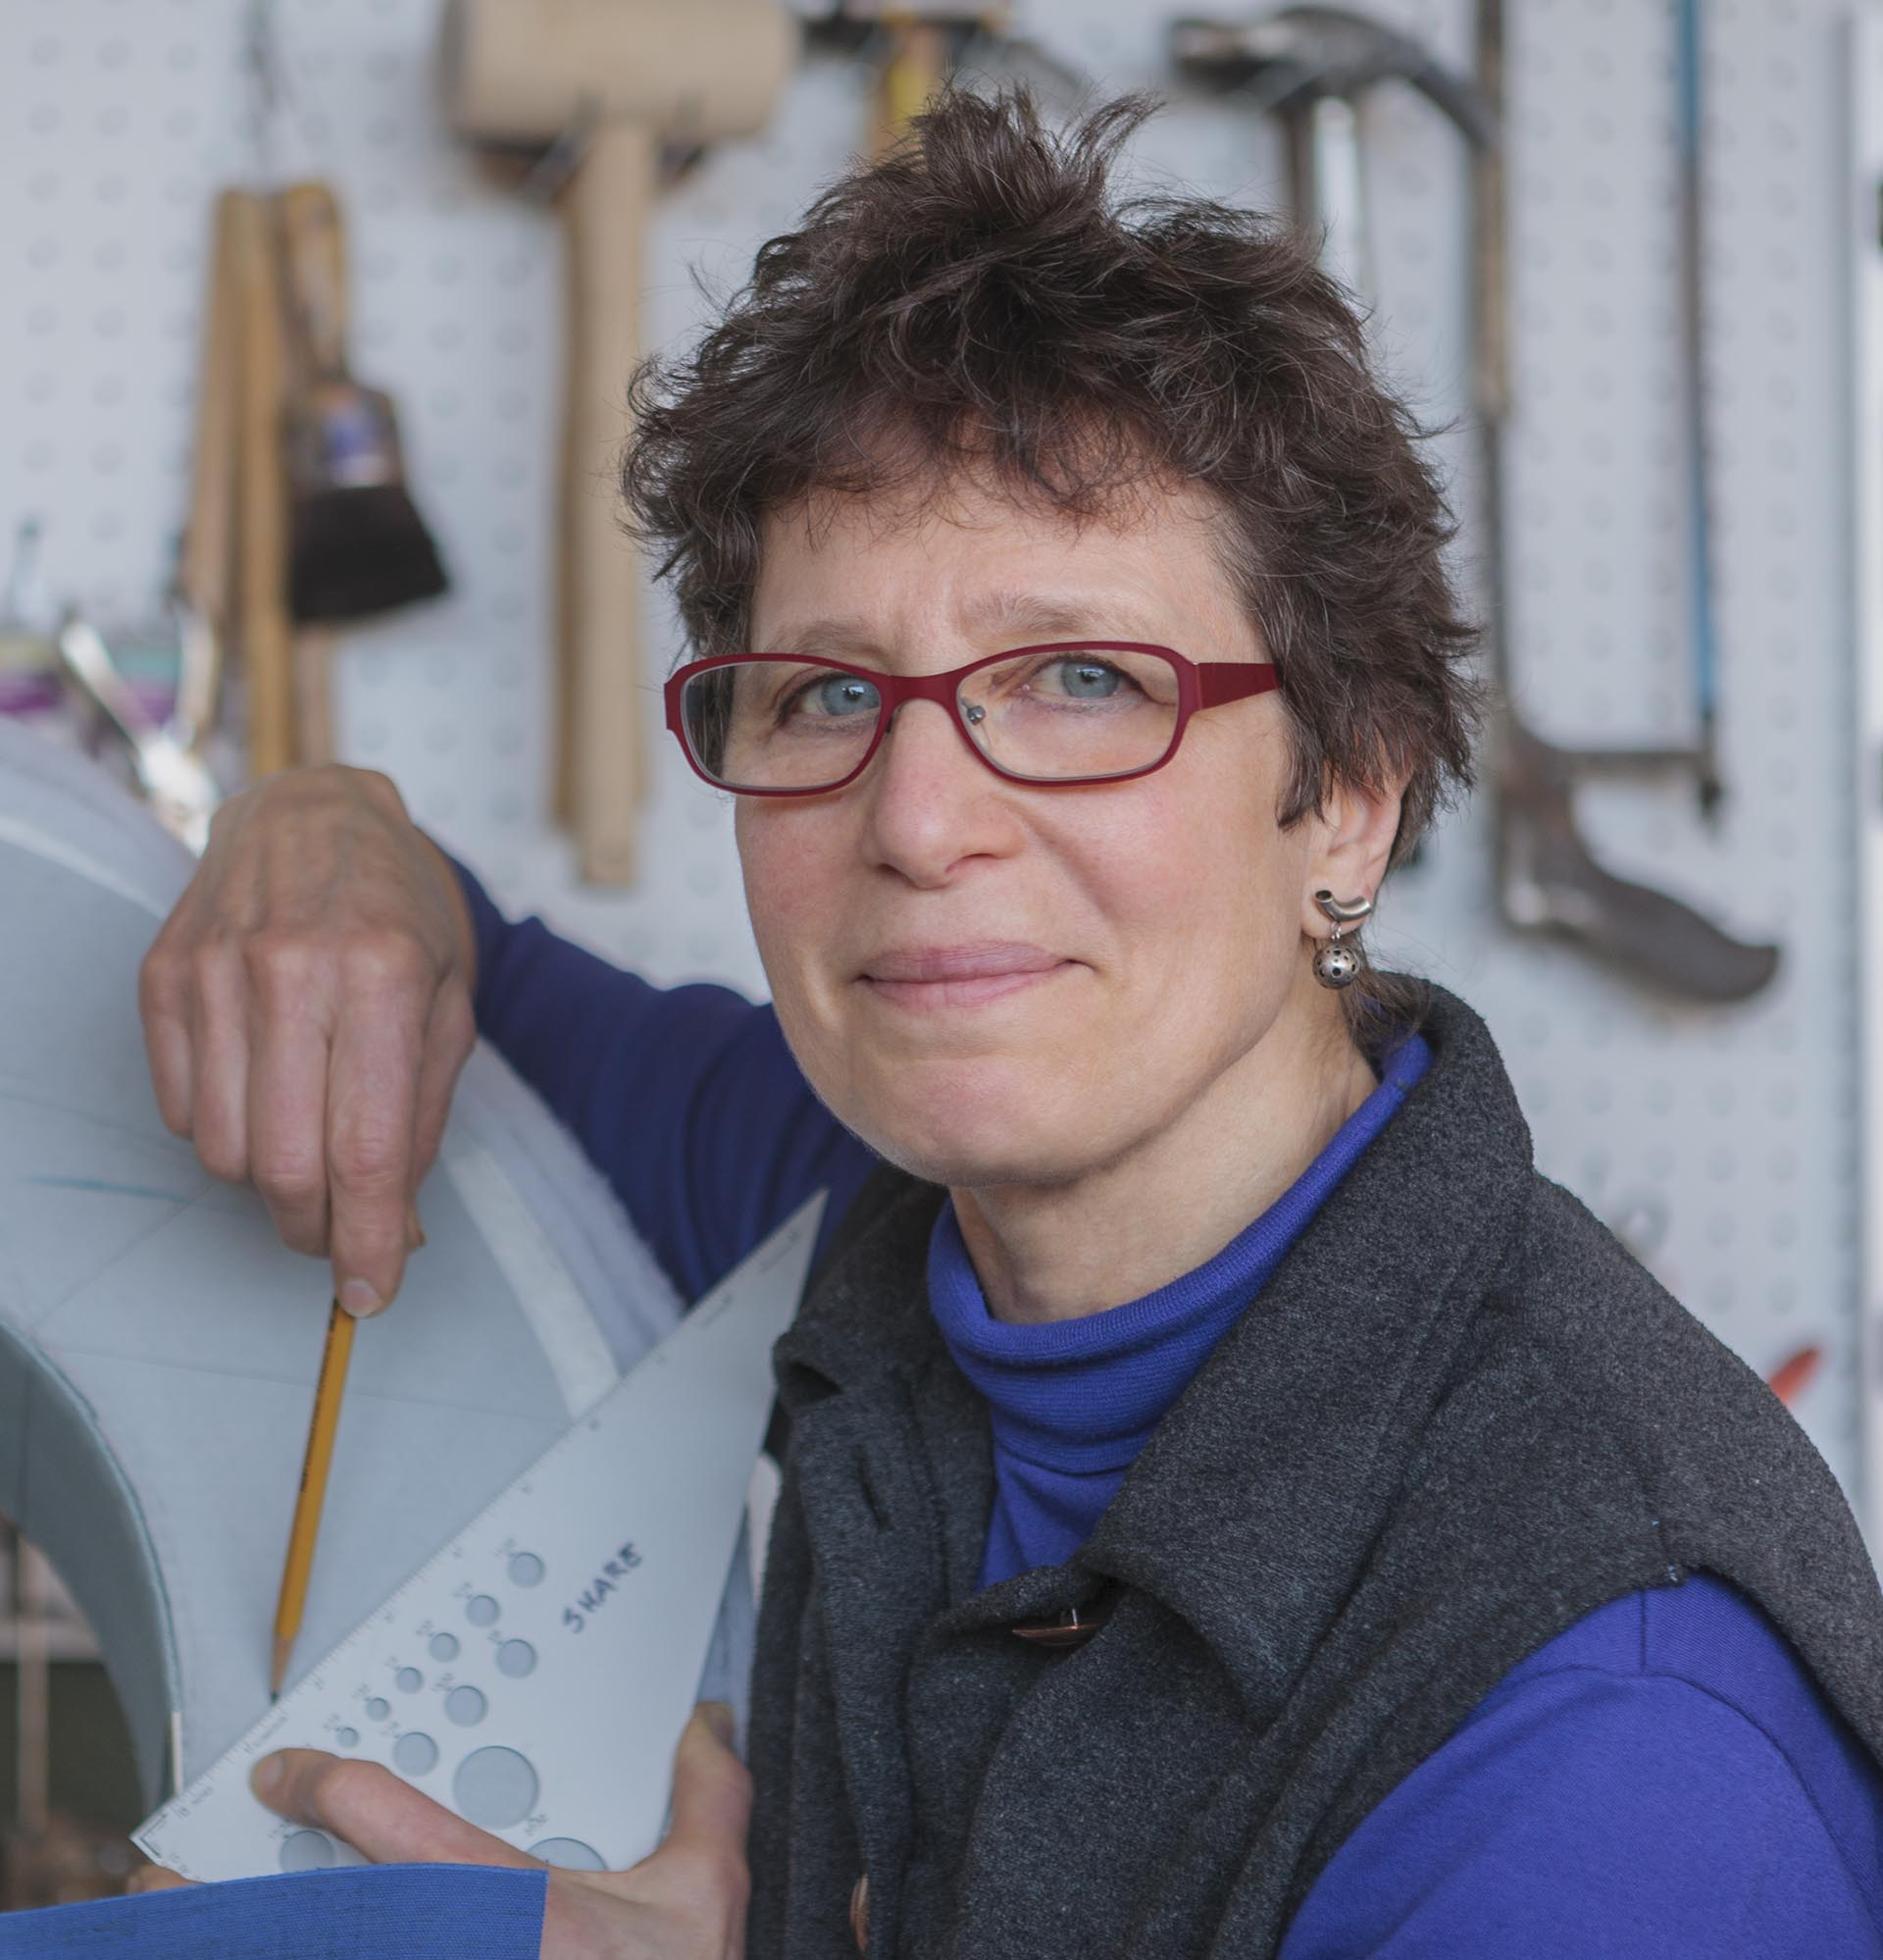 portrait of Susan Joy Share, holding a pencil and a metal triangle.